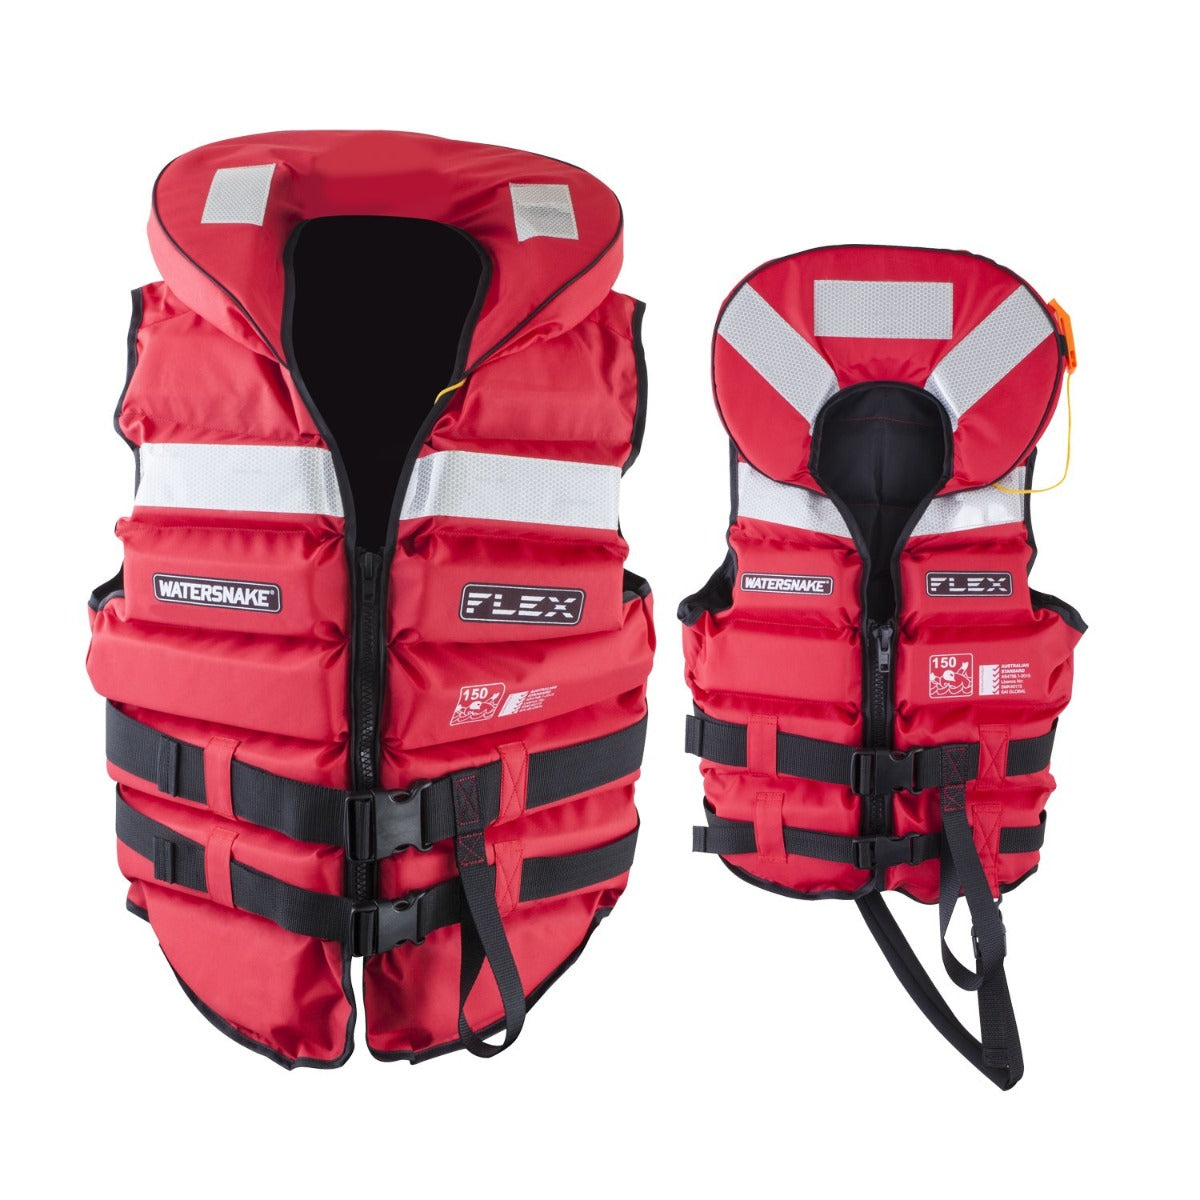 Watersnake Flex PFD Level 150 Life Jacket Child